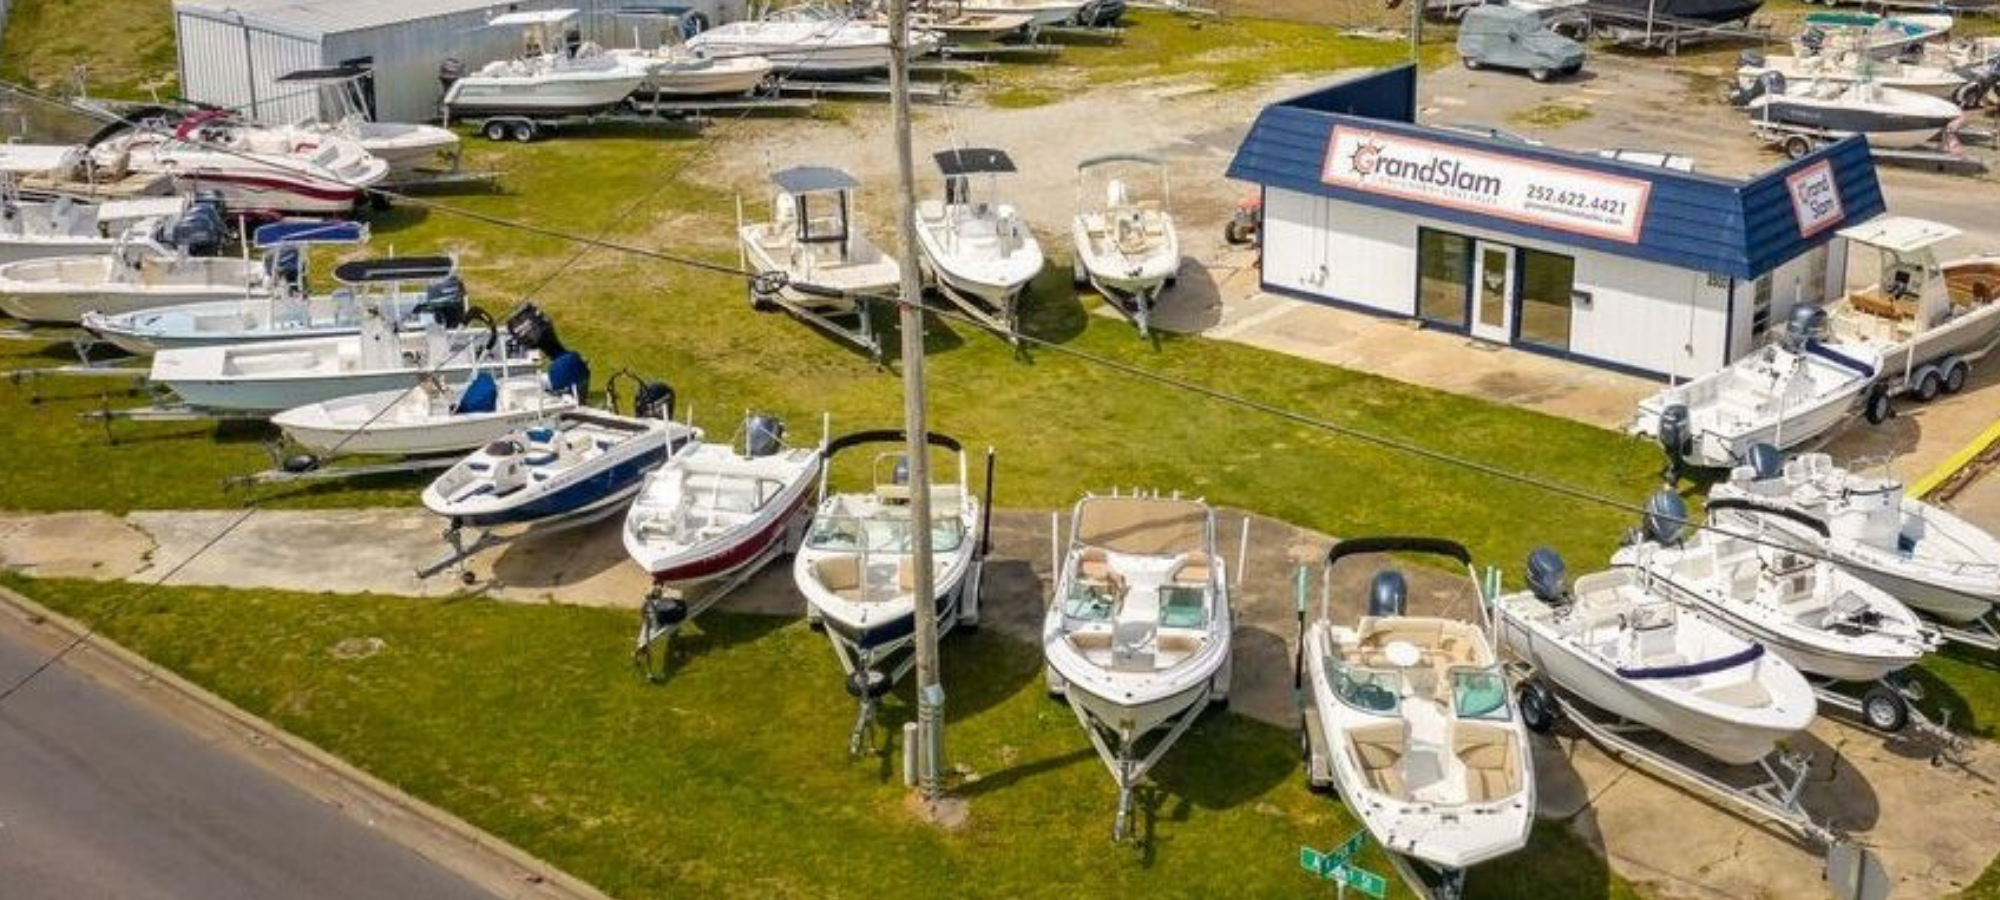 Welcome to Grand Slam Consignment Boat Sales - Grand Slam